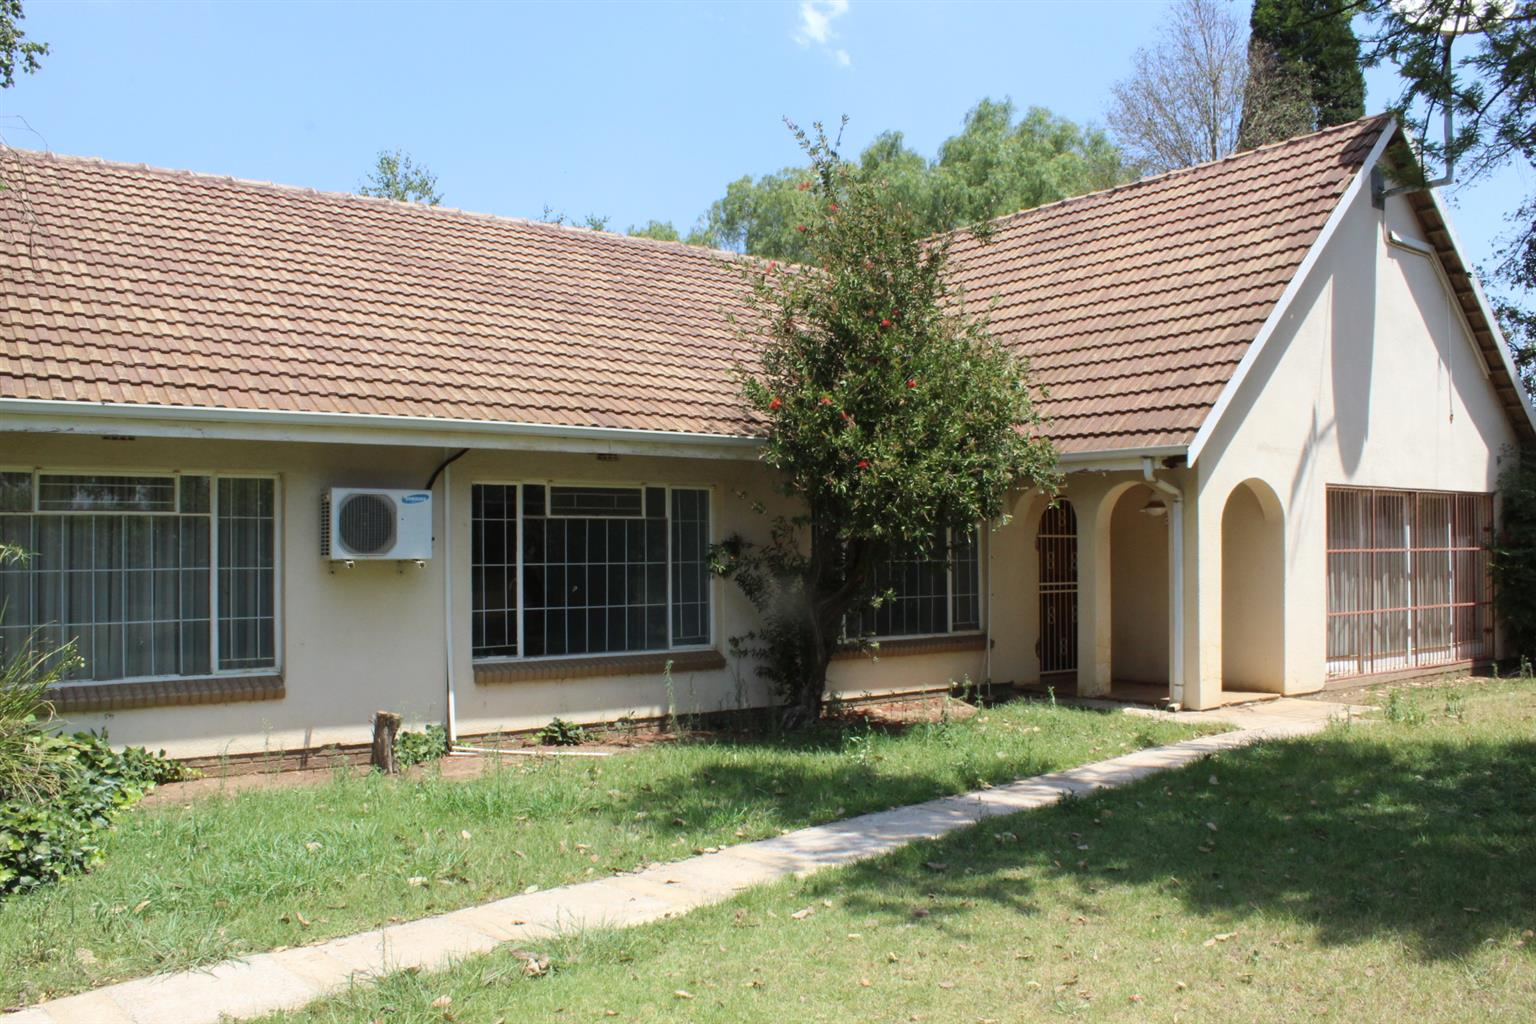 BENONI-LILYVALE (BES PART)-INDUSTRIAL  USES-1.5 Ha- MASSIVE WORKSHOP/FACTORY- FULLY WALLED-R1.55 Mil!!